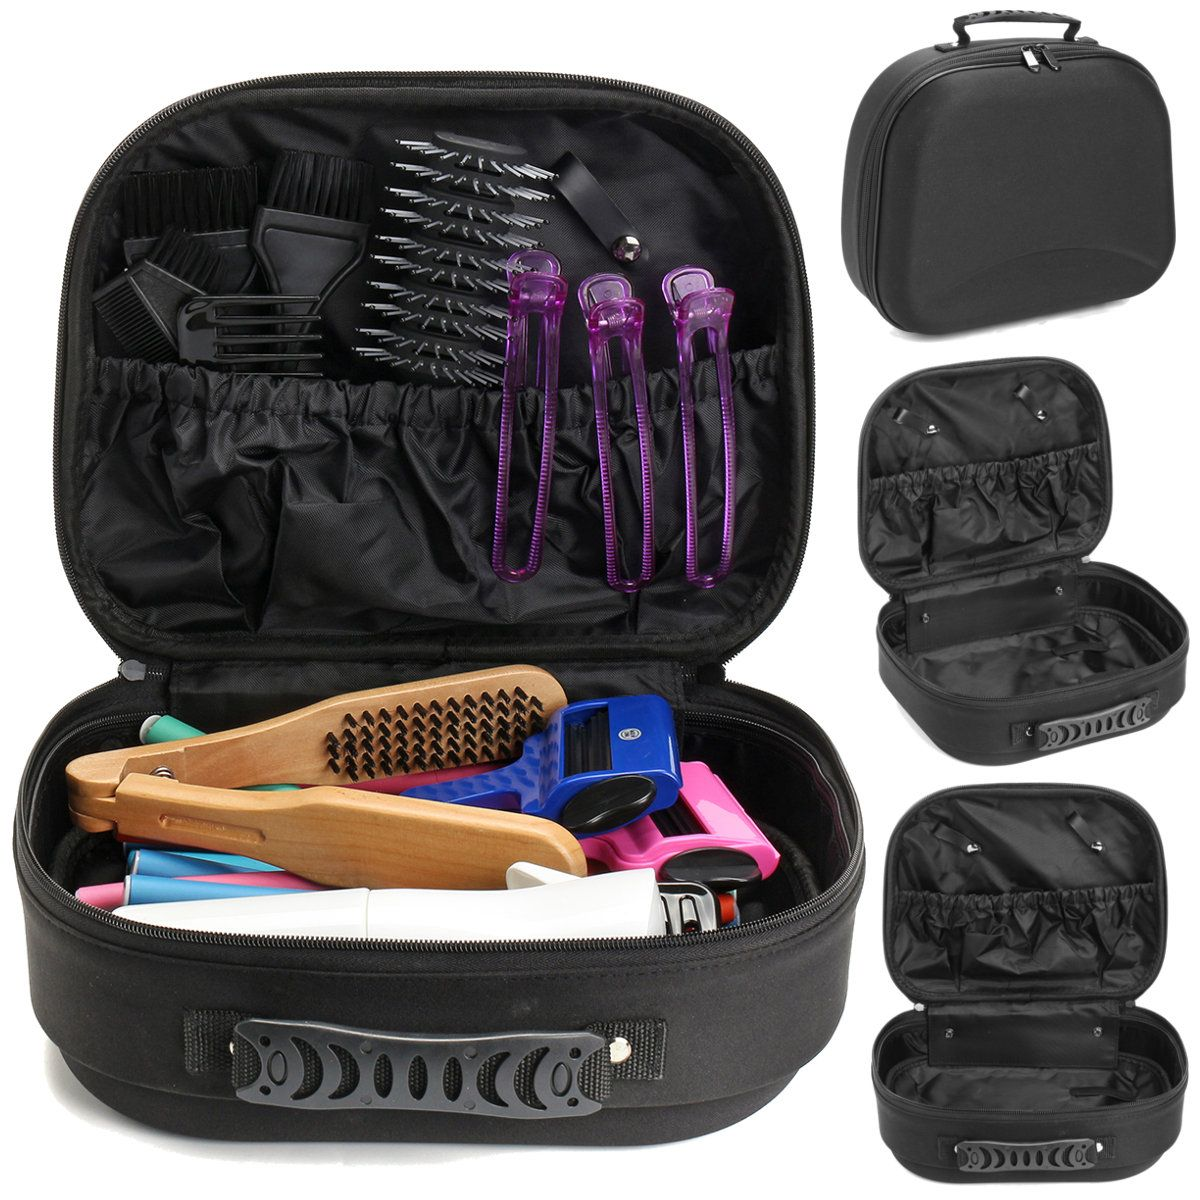 Hair Salon Tools Organizer Bag Barber Scissors Combs Storage Pouch Hairdressing Case Holder Hair Salon Tools Storage Pouch Bag Organization